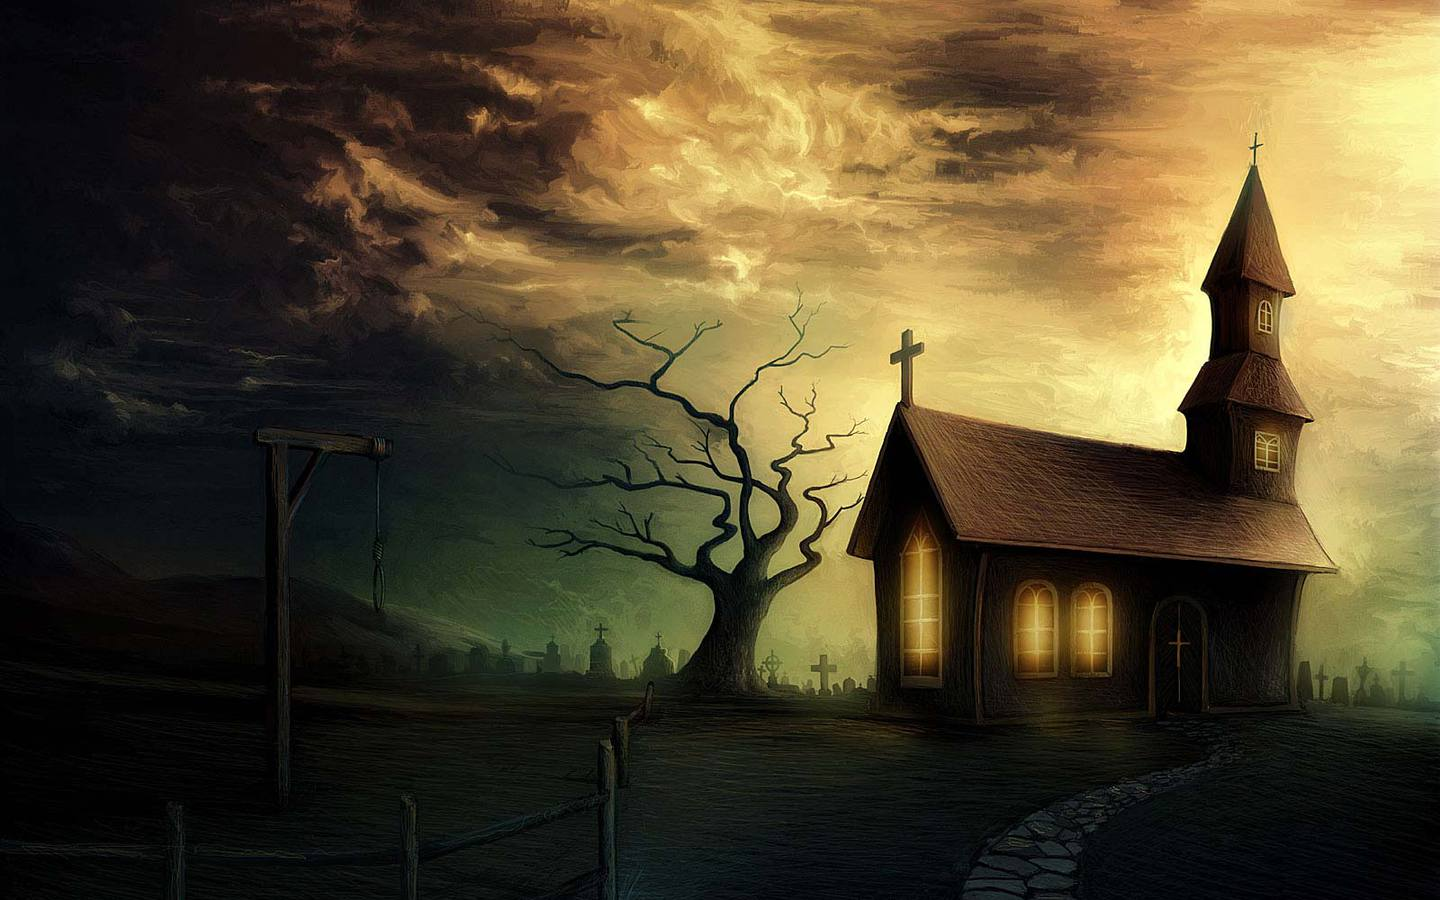 Horror Ghost Houses wallpapers HQ image size : 1440x900